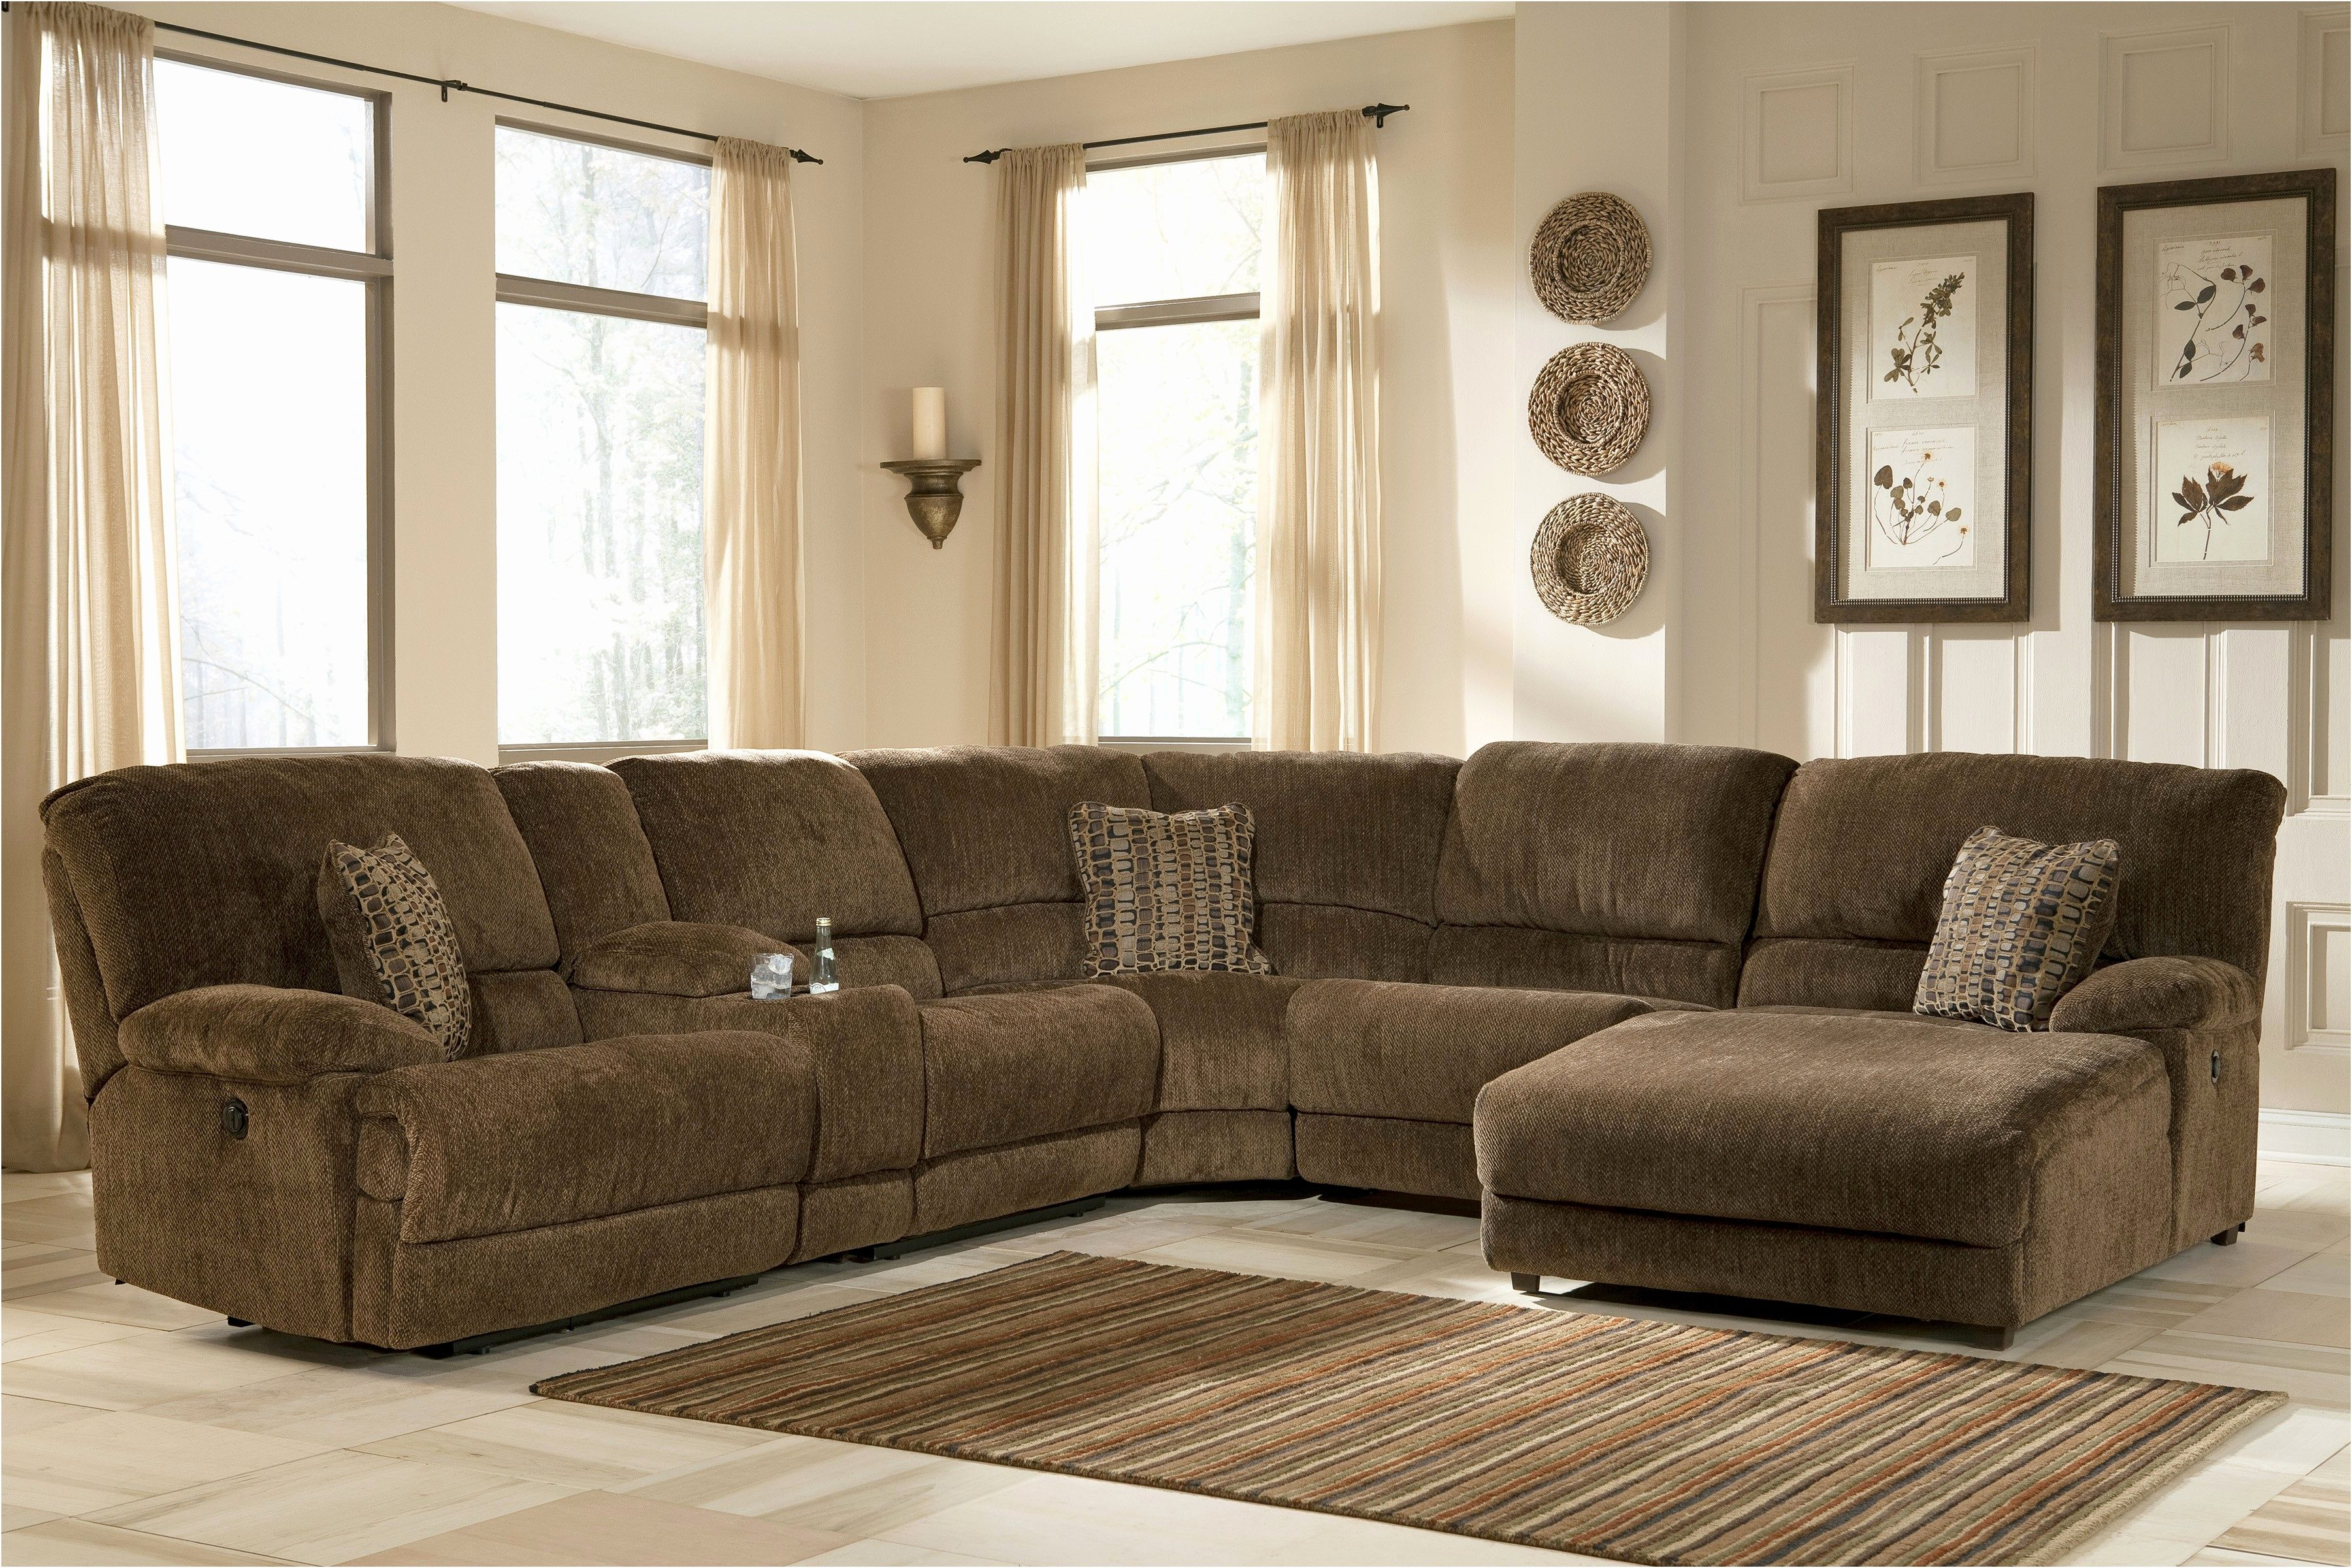 Fresh Costco Leather Sofa Pictures Awesome Power Reclining Sofa Costco Elegant Sof Sectional Sofa With Recliner Brown Sectional Sofa Sectional Sofa With Chaise